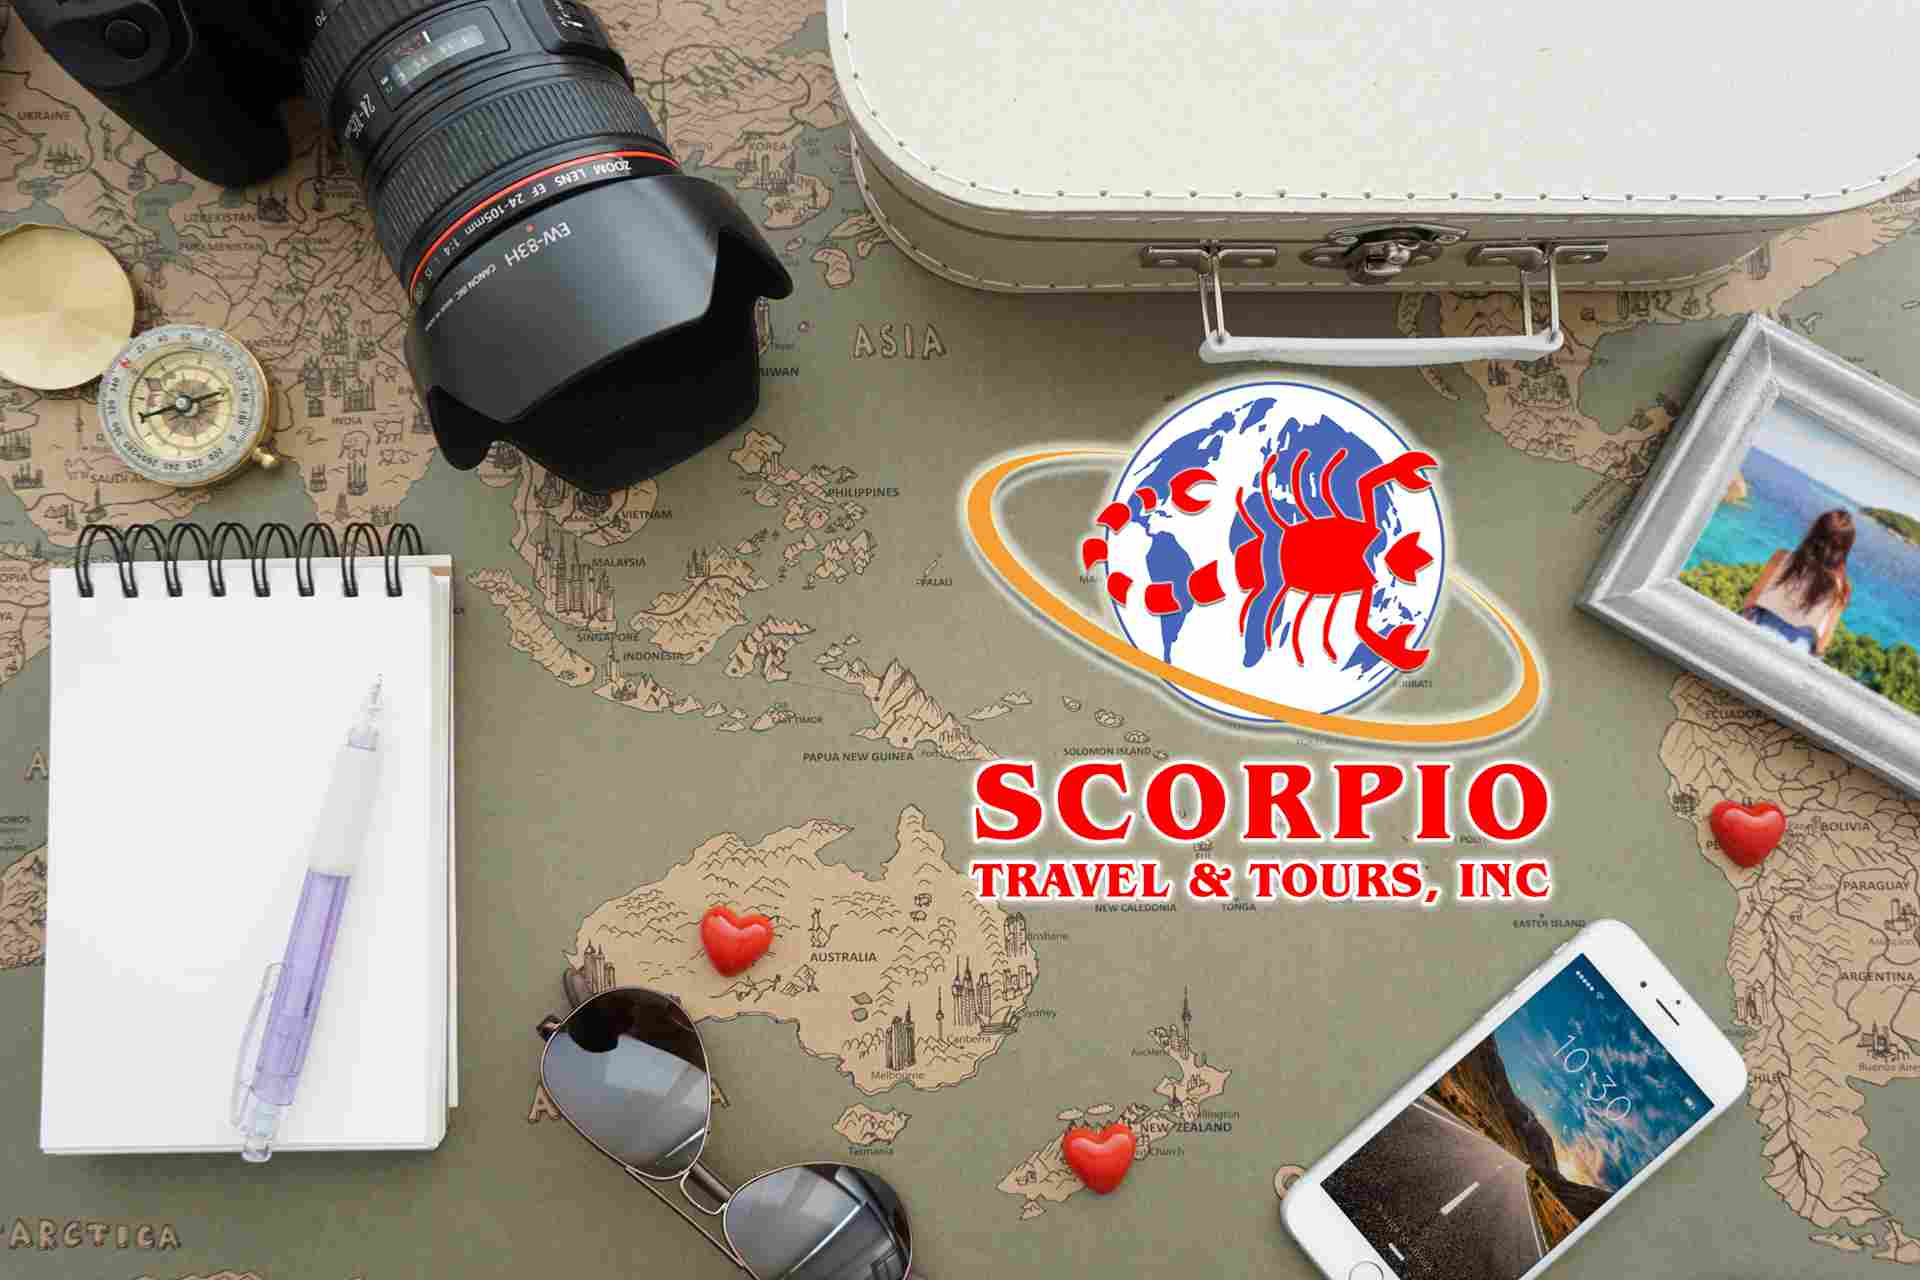 Scorpio Travel & Tours